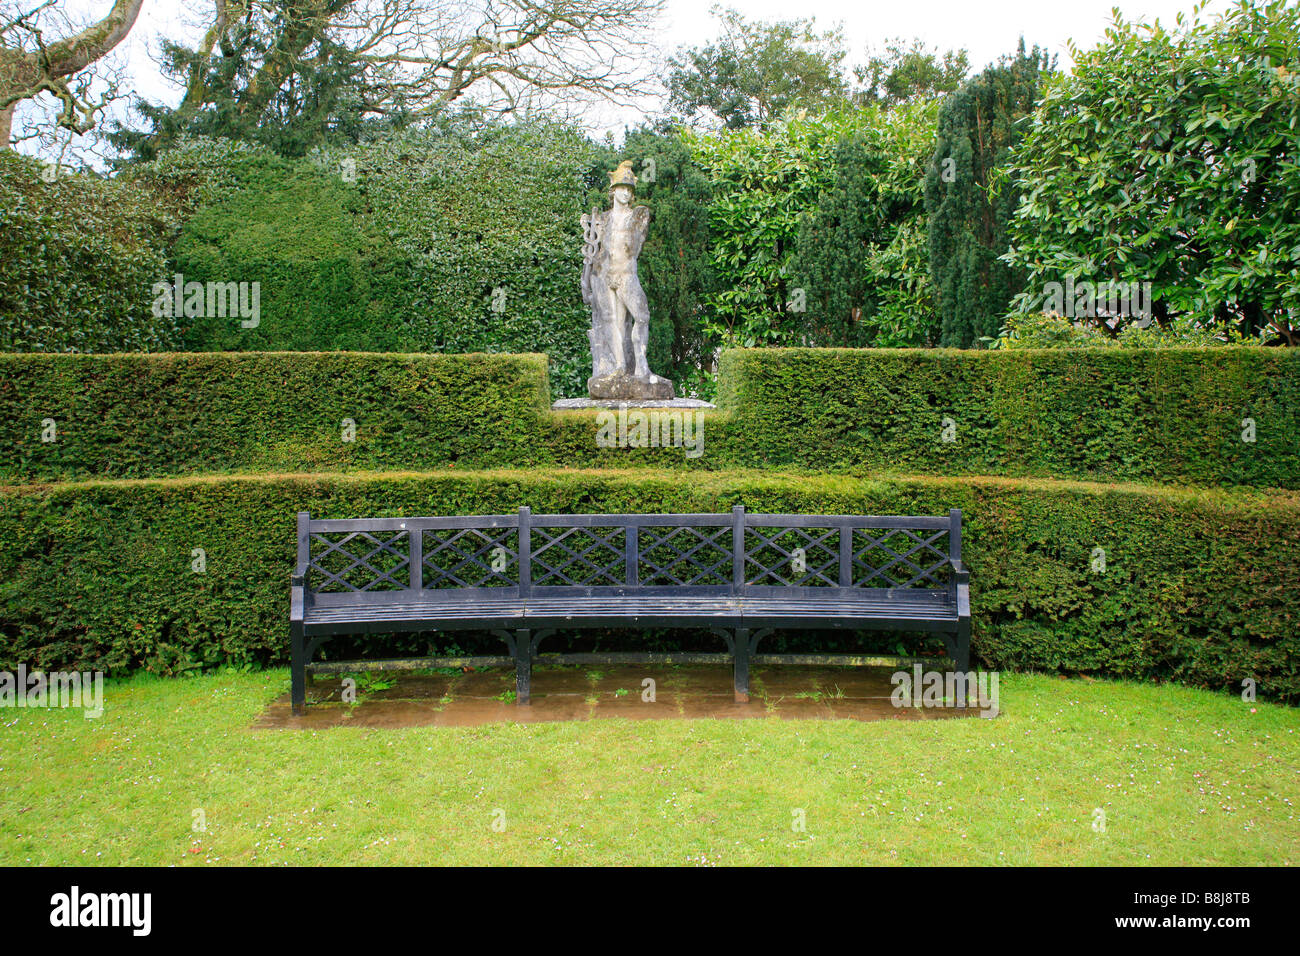 Classic english garden design stock photo royalty free for English garden design